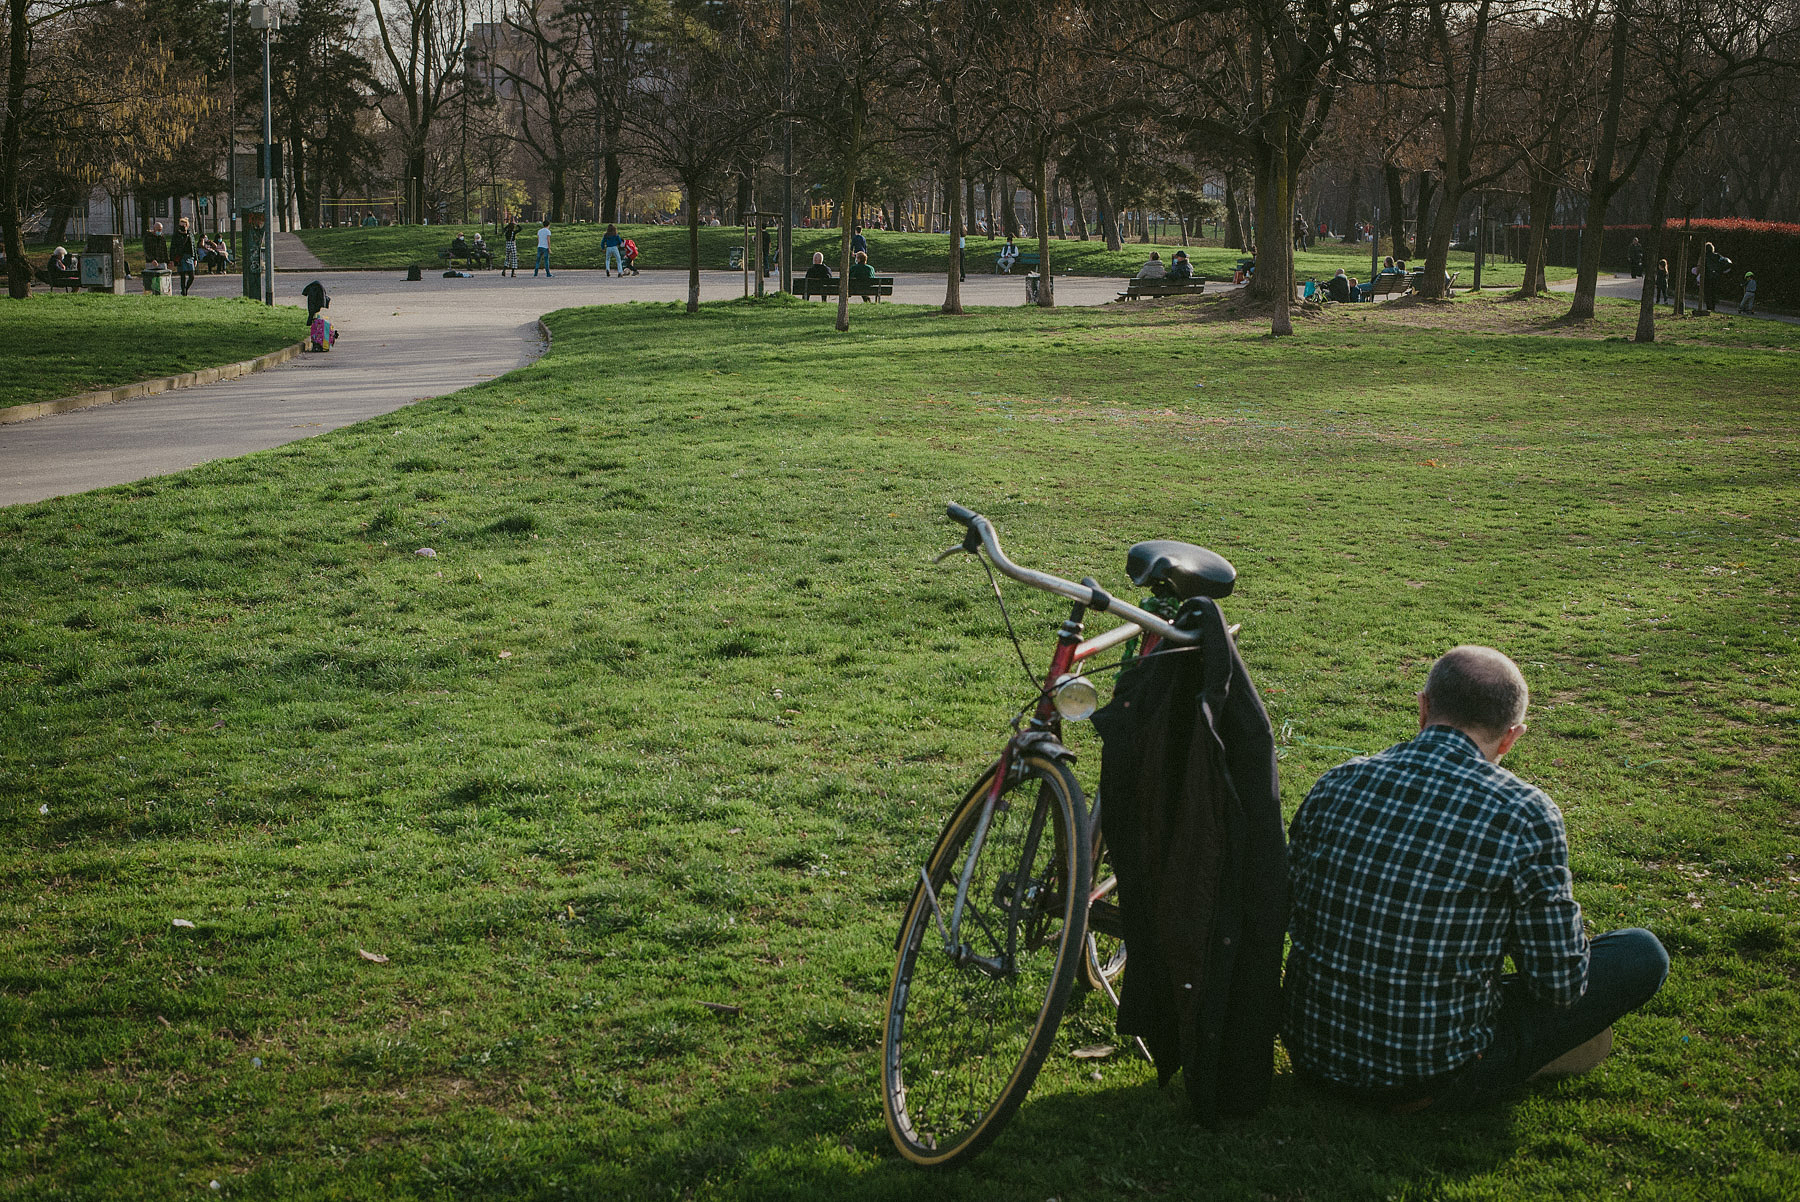 A man sat on the grass alongside his bicycle in the Vittorio Formentano Park in Milan